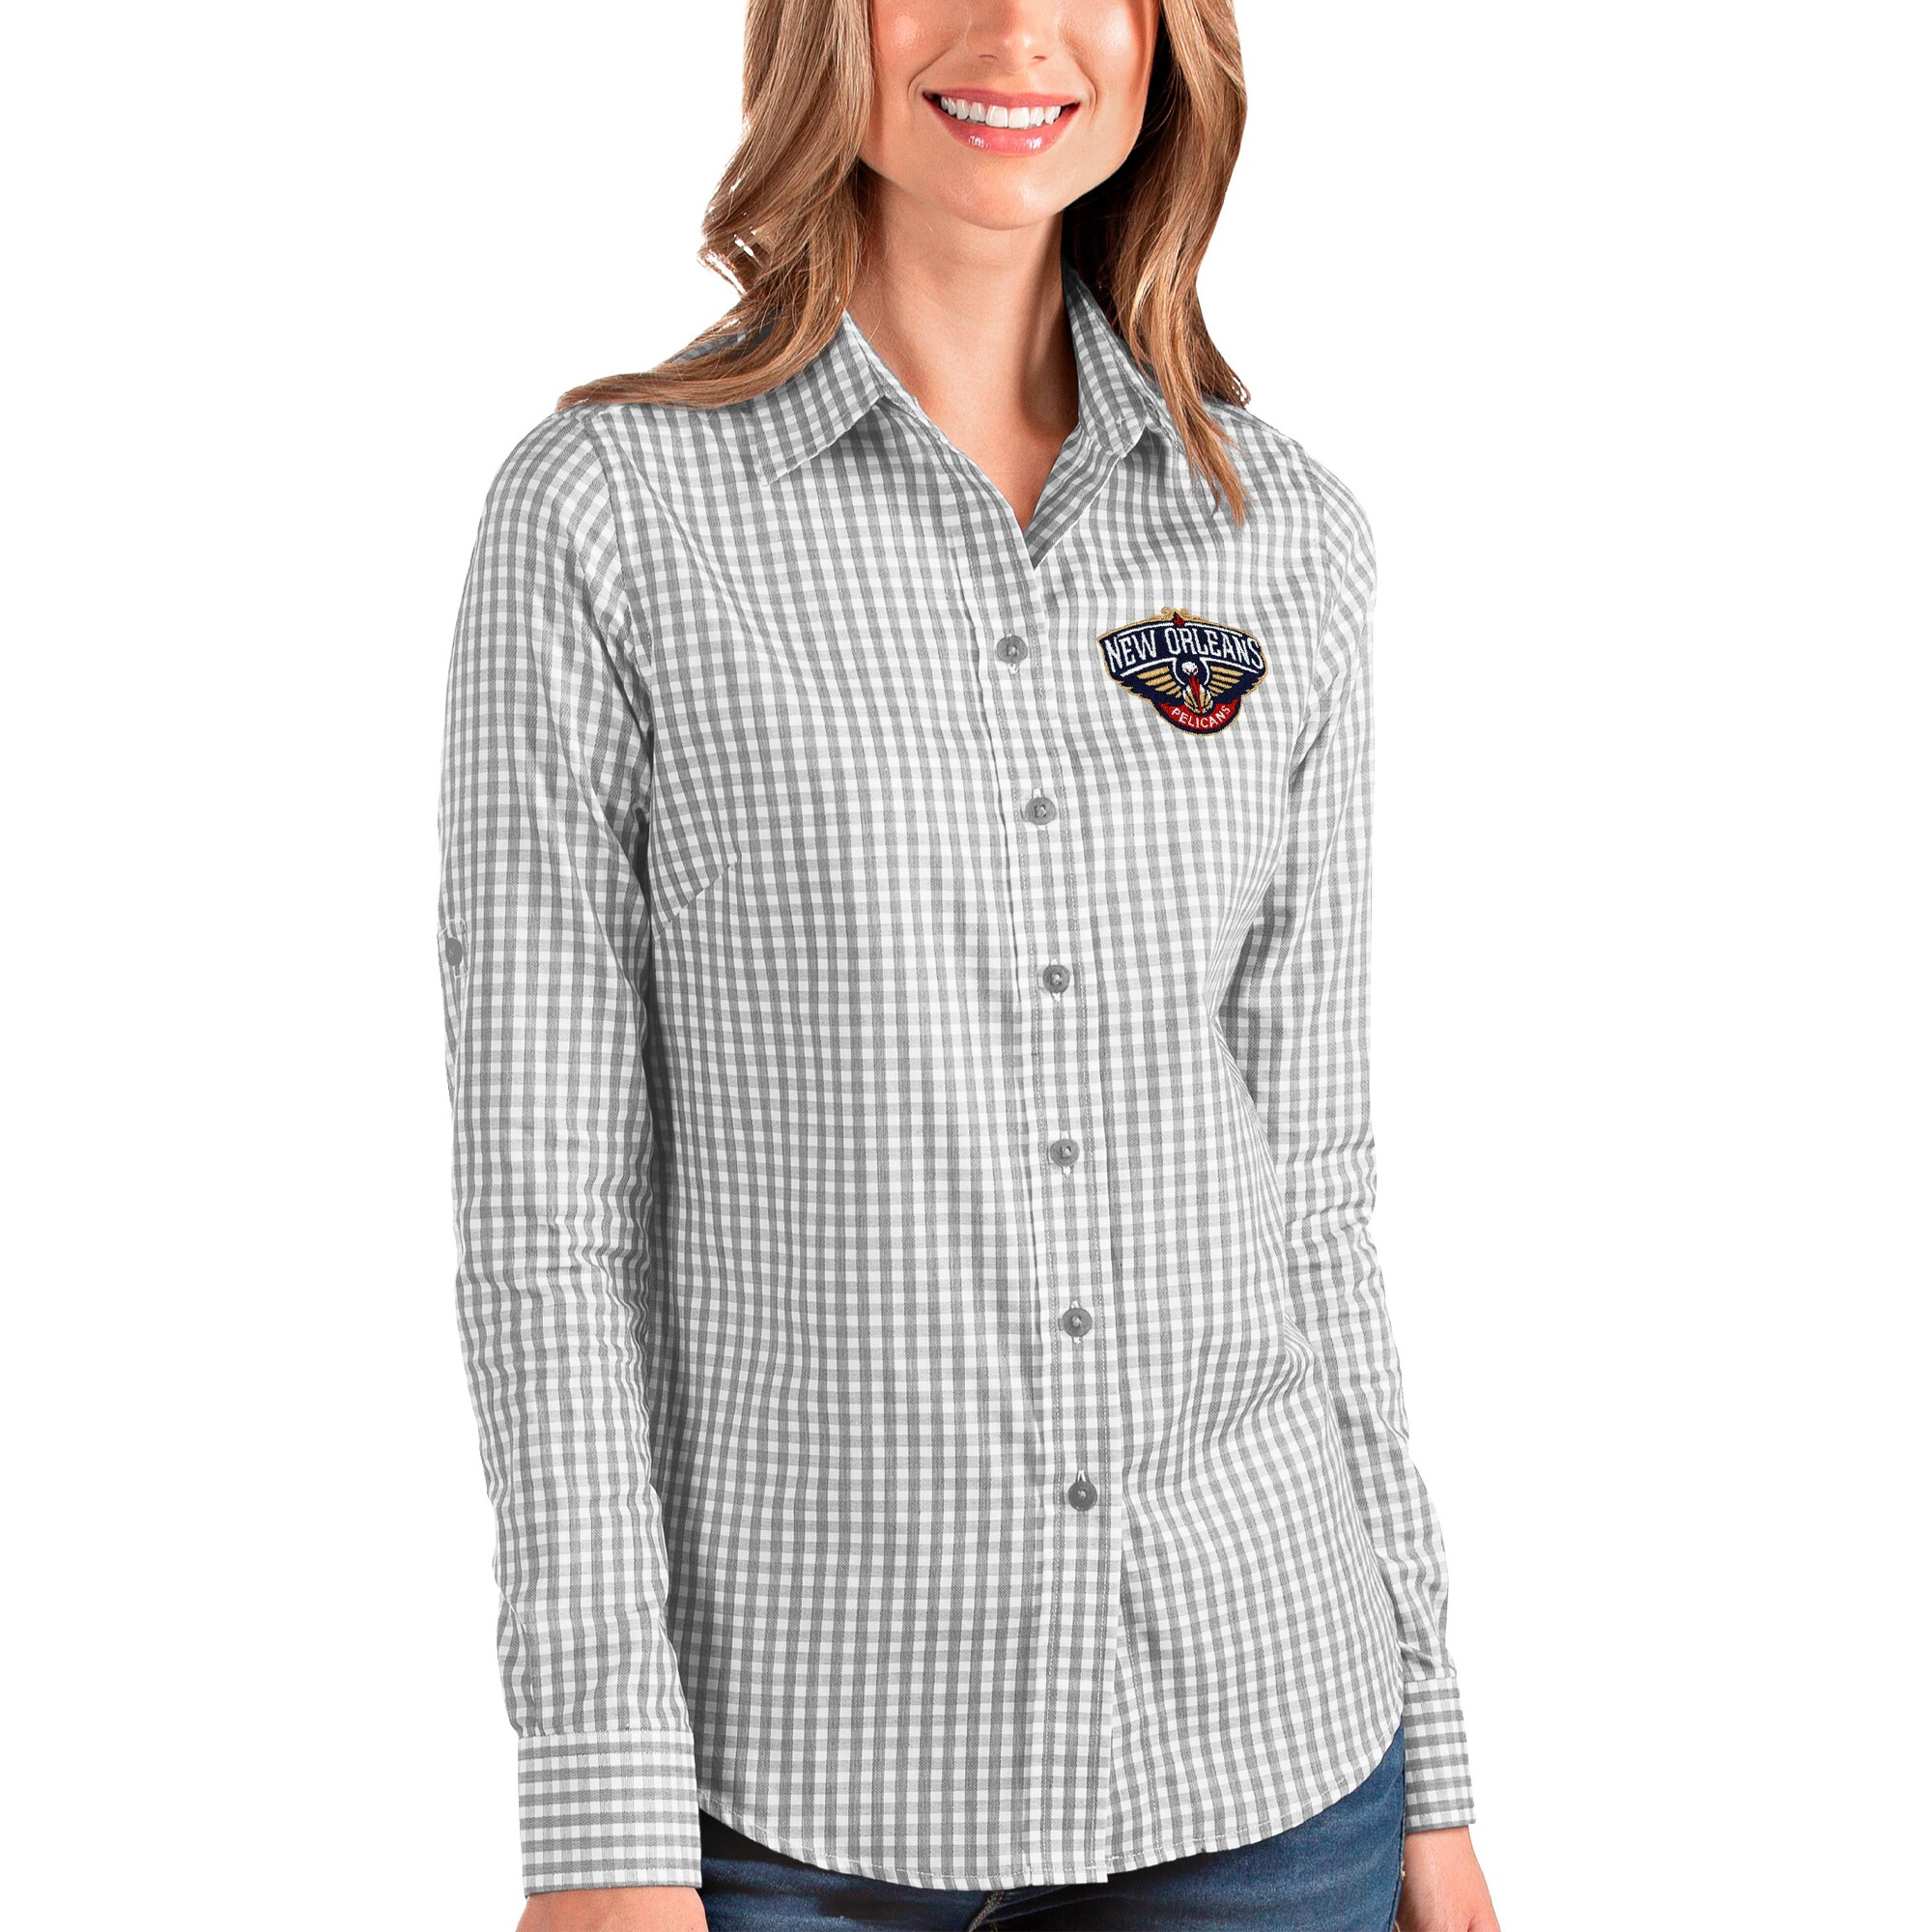 New Orleans Pelicans Antigua Women's Structure Button-Up Long Sleeve Shirt - Charcoal/White